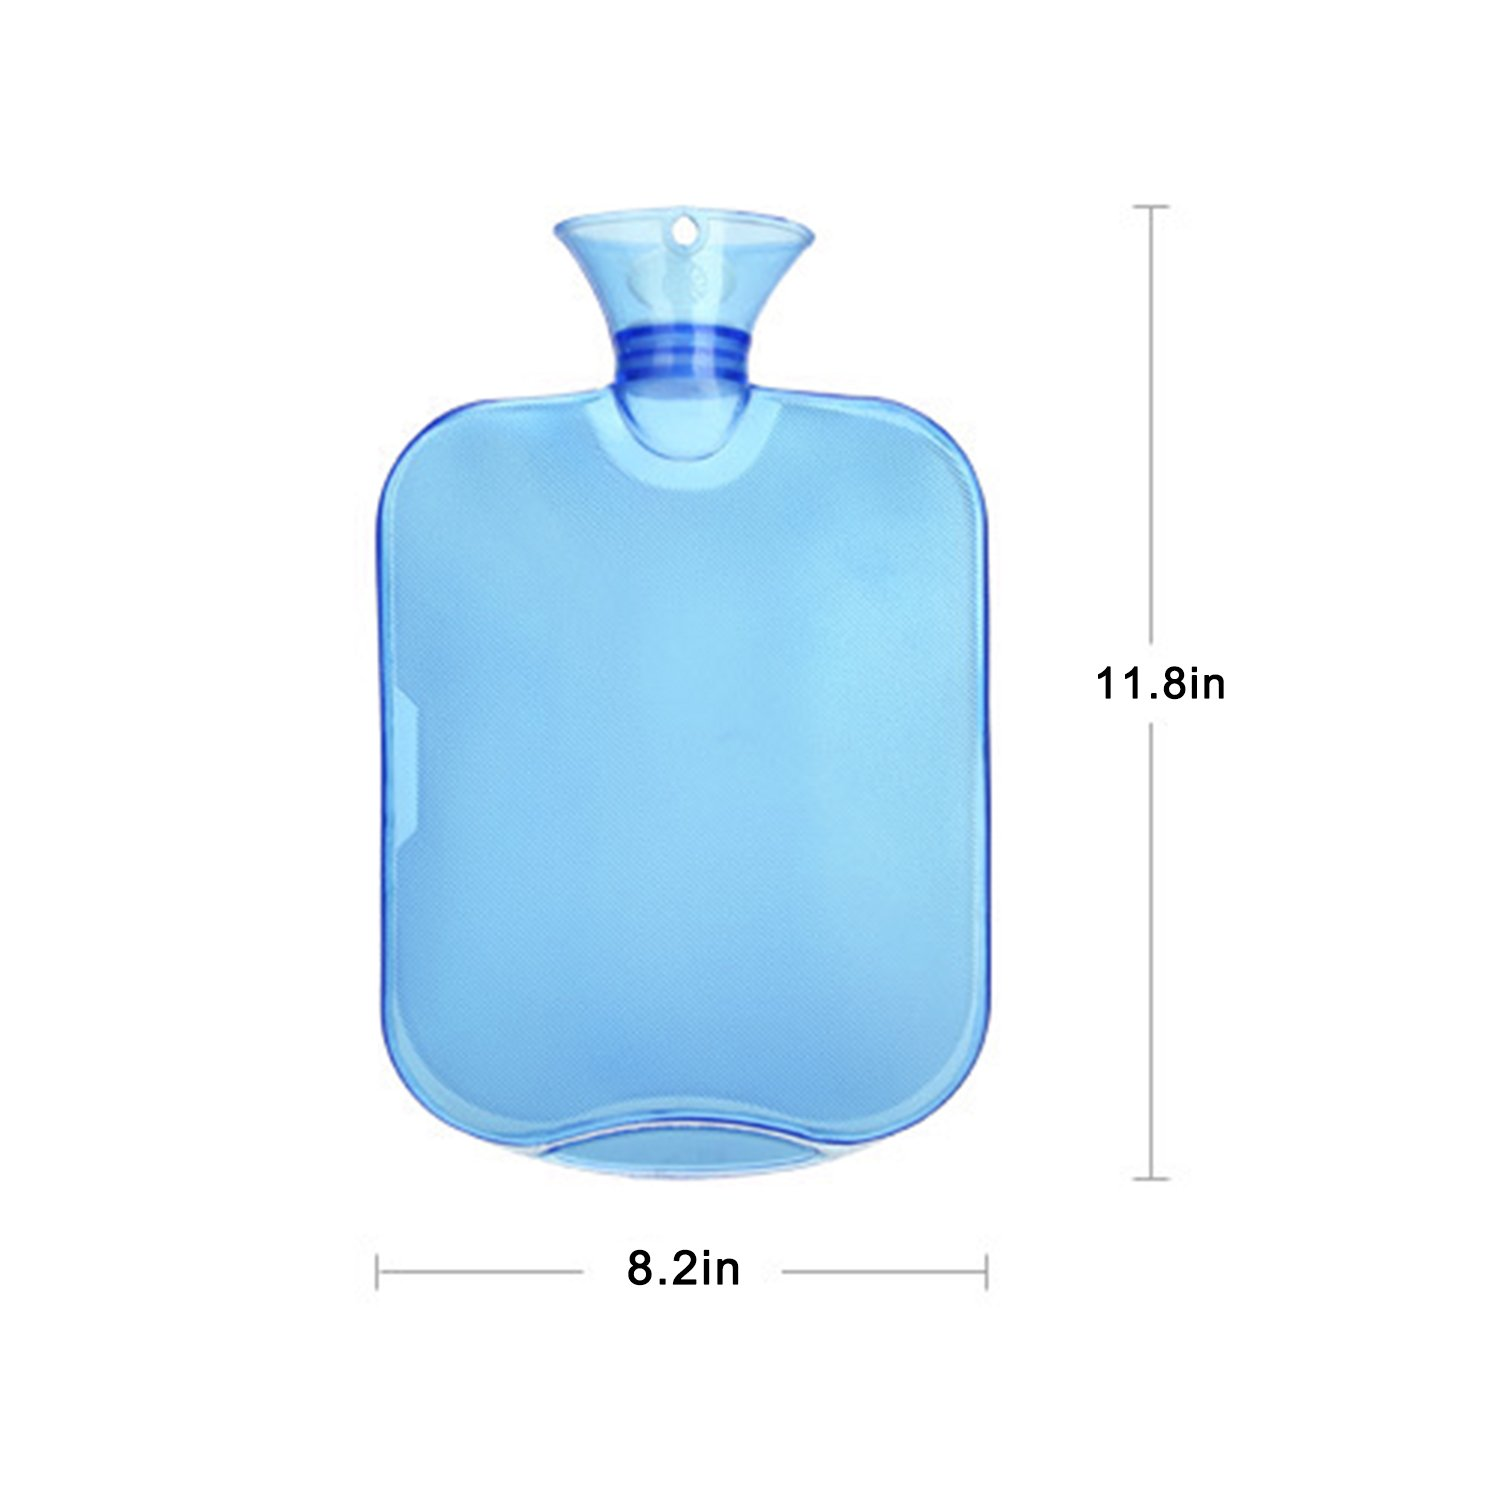 All one tech Transparent Classic Rubber Hot Water Bottle with Knit Cover - Blue by All one tech